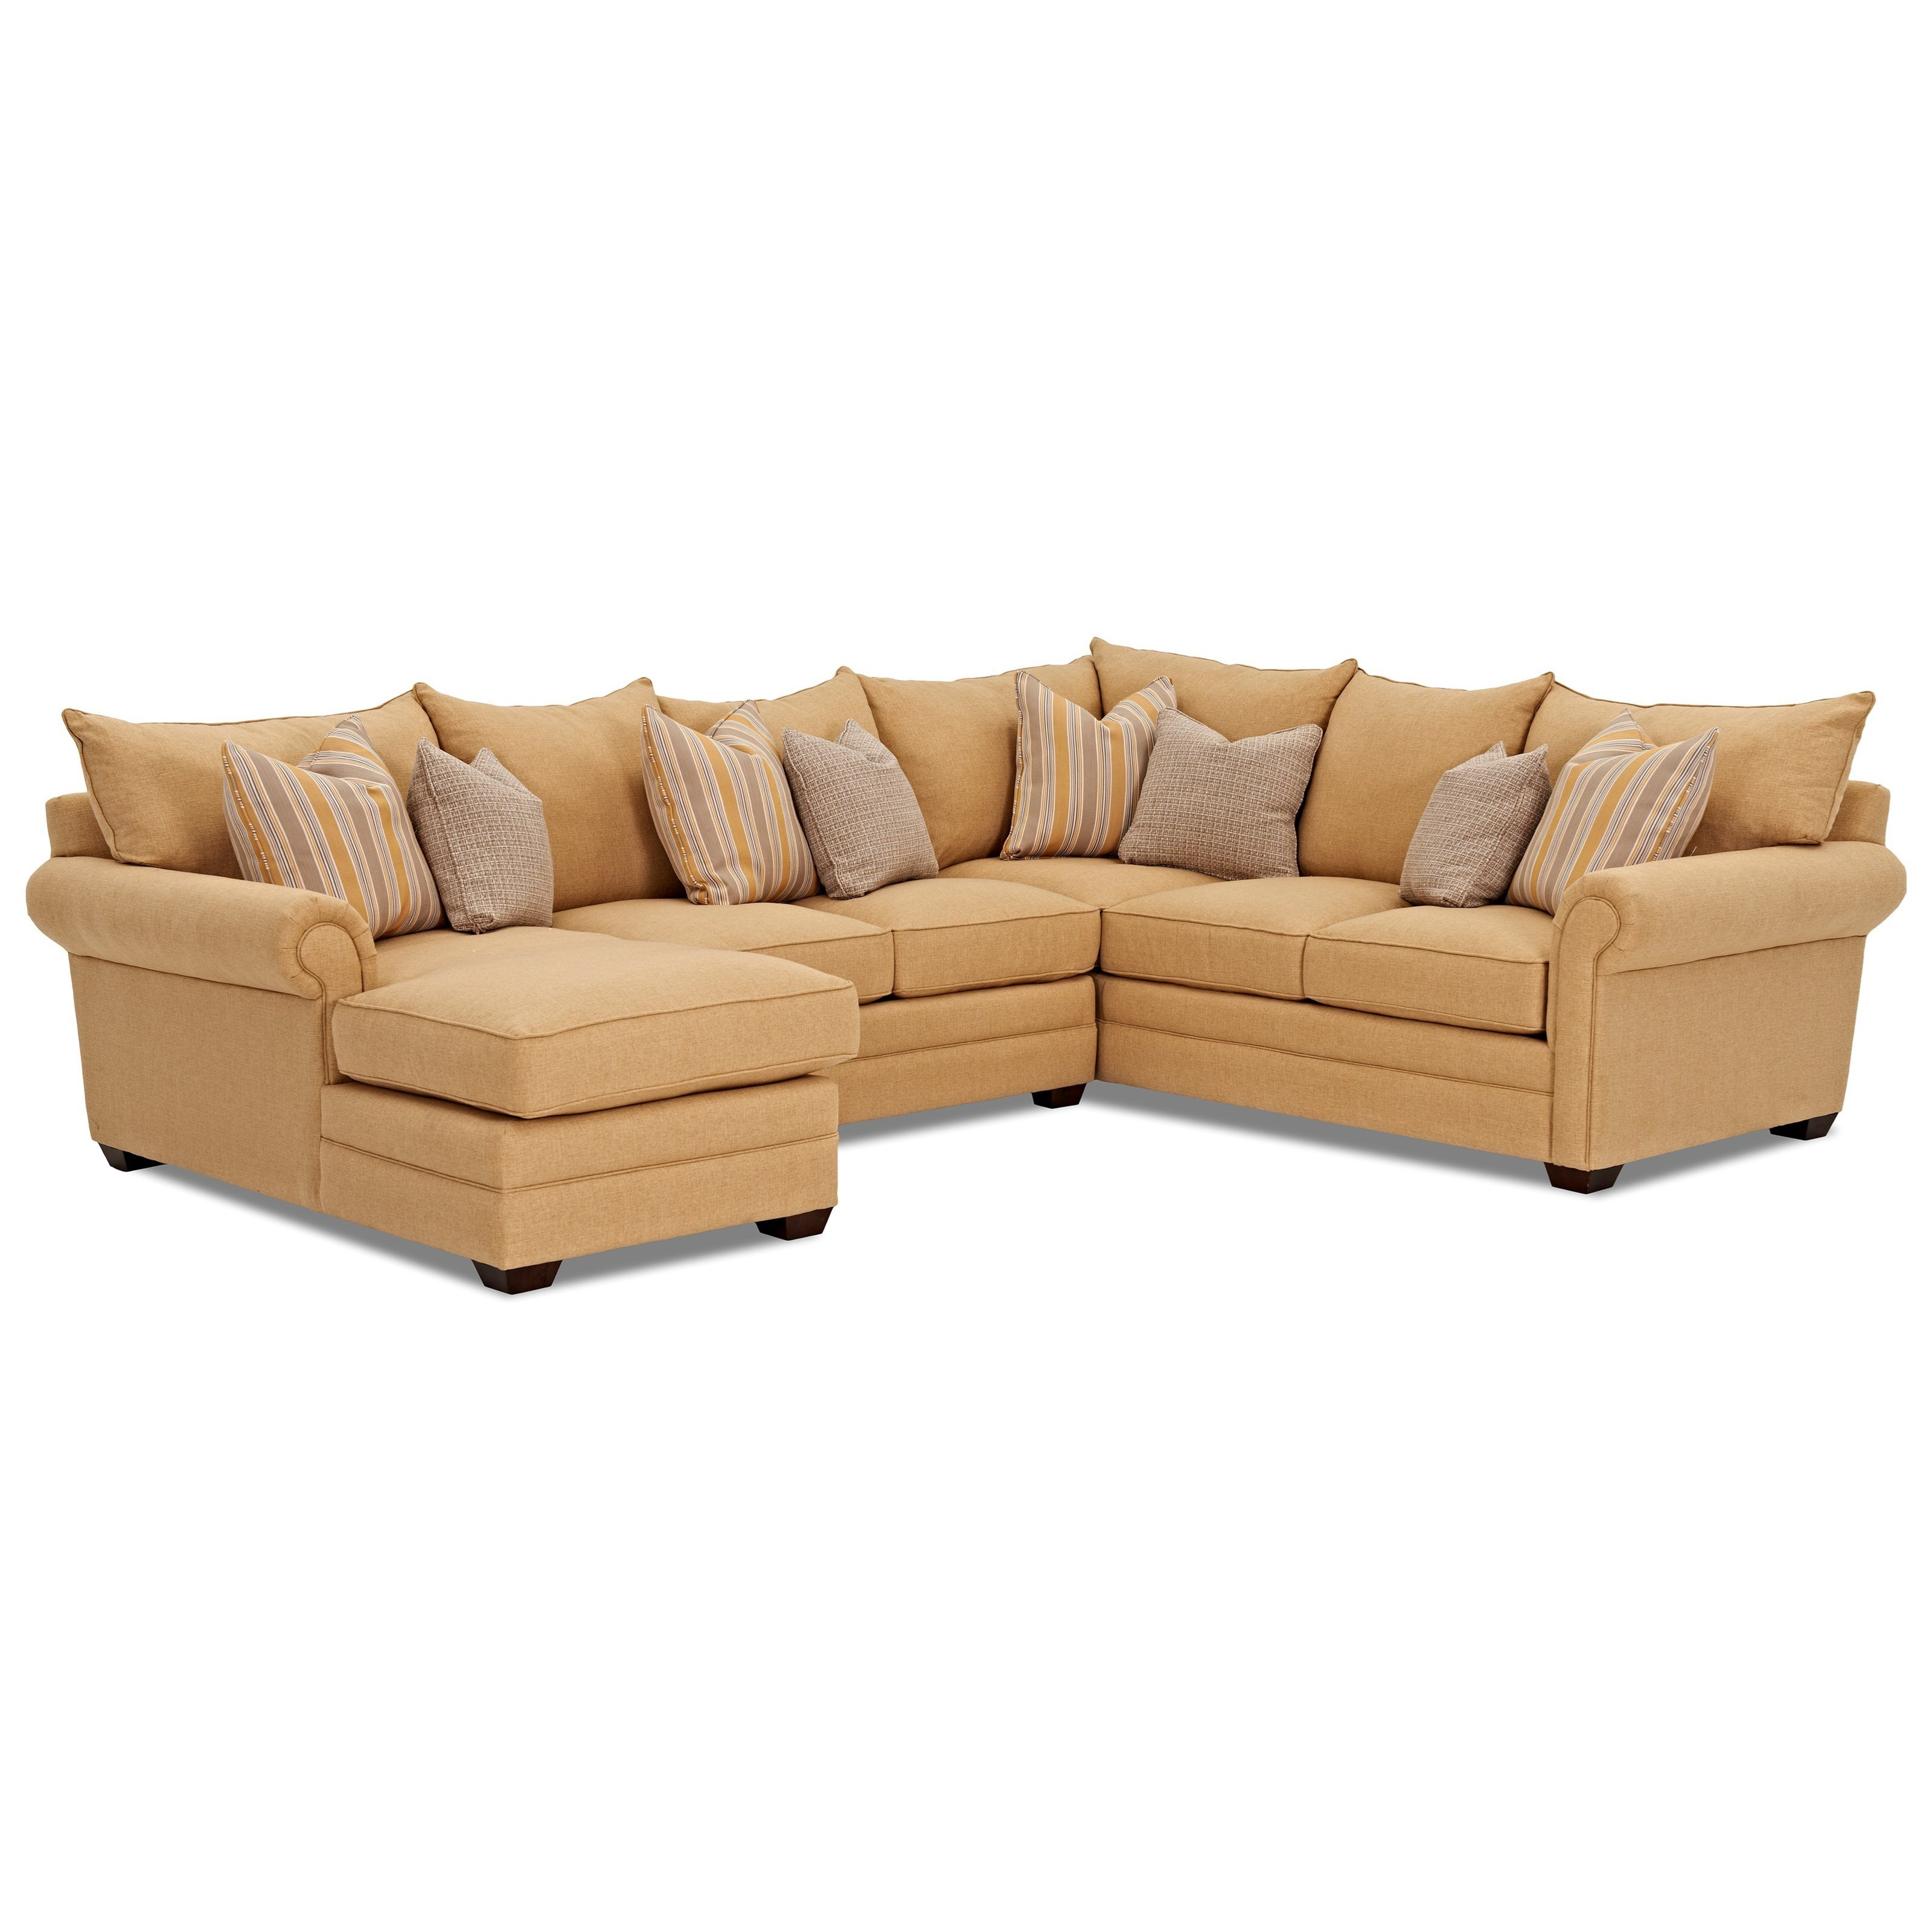 klaussner huntley four piece sectional sofa with laf chaise rh pilgrimfurniturecity com